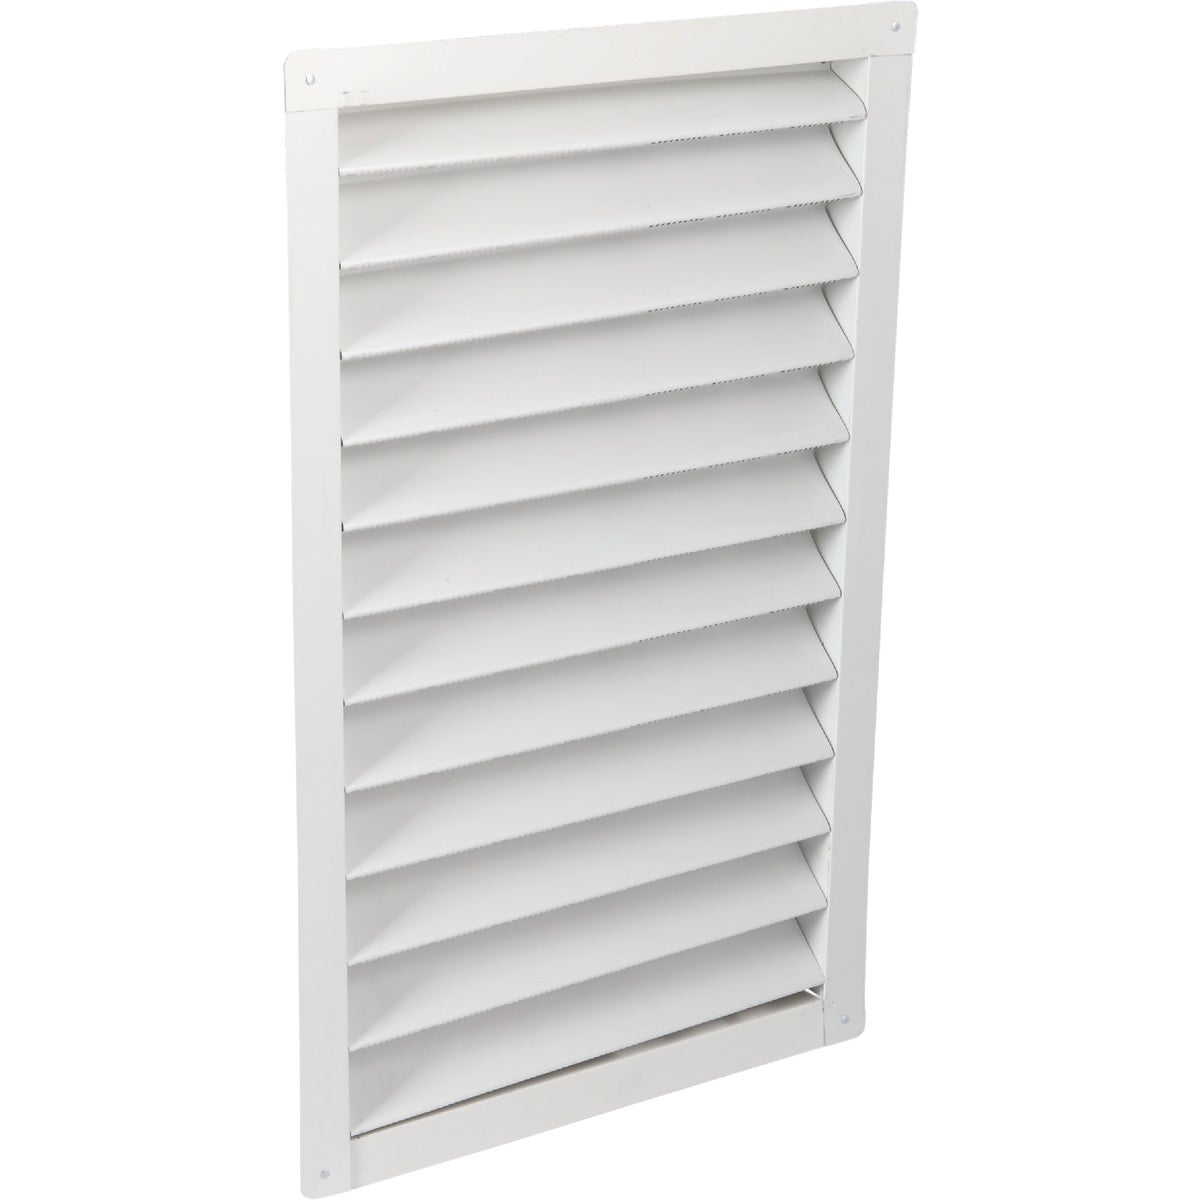 14X24WHT ALM WALL LOUVER - 81232 by Air Vent Inc